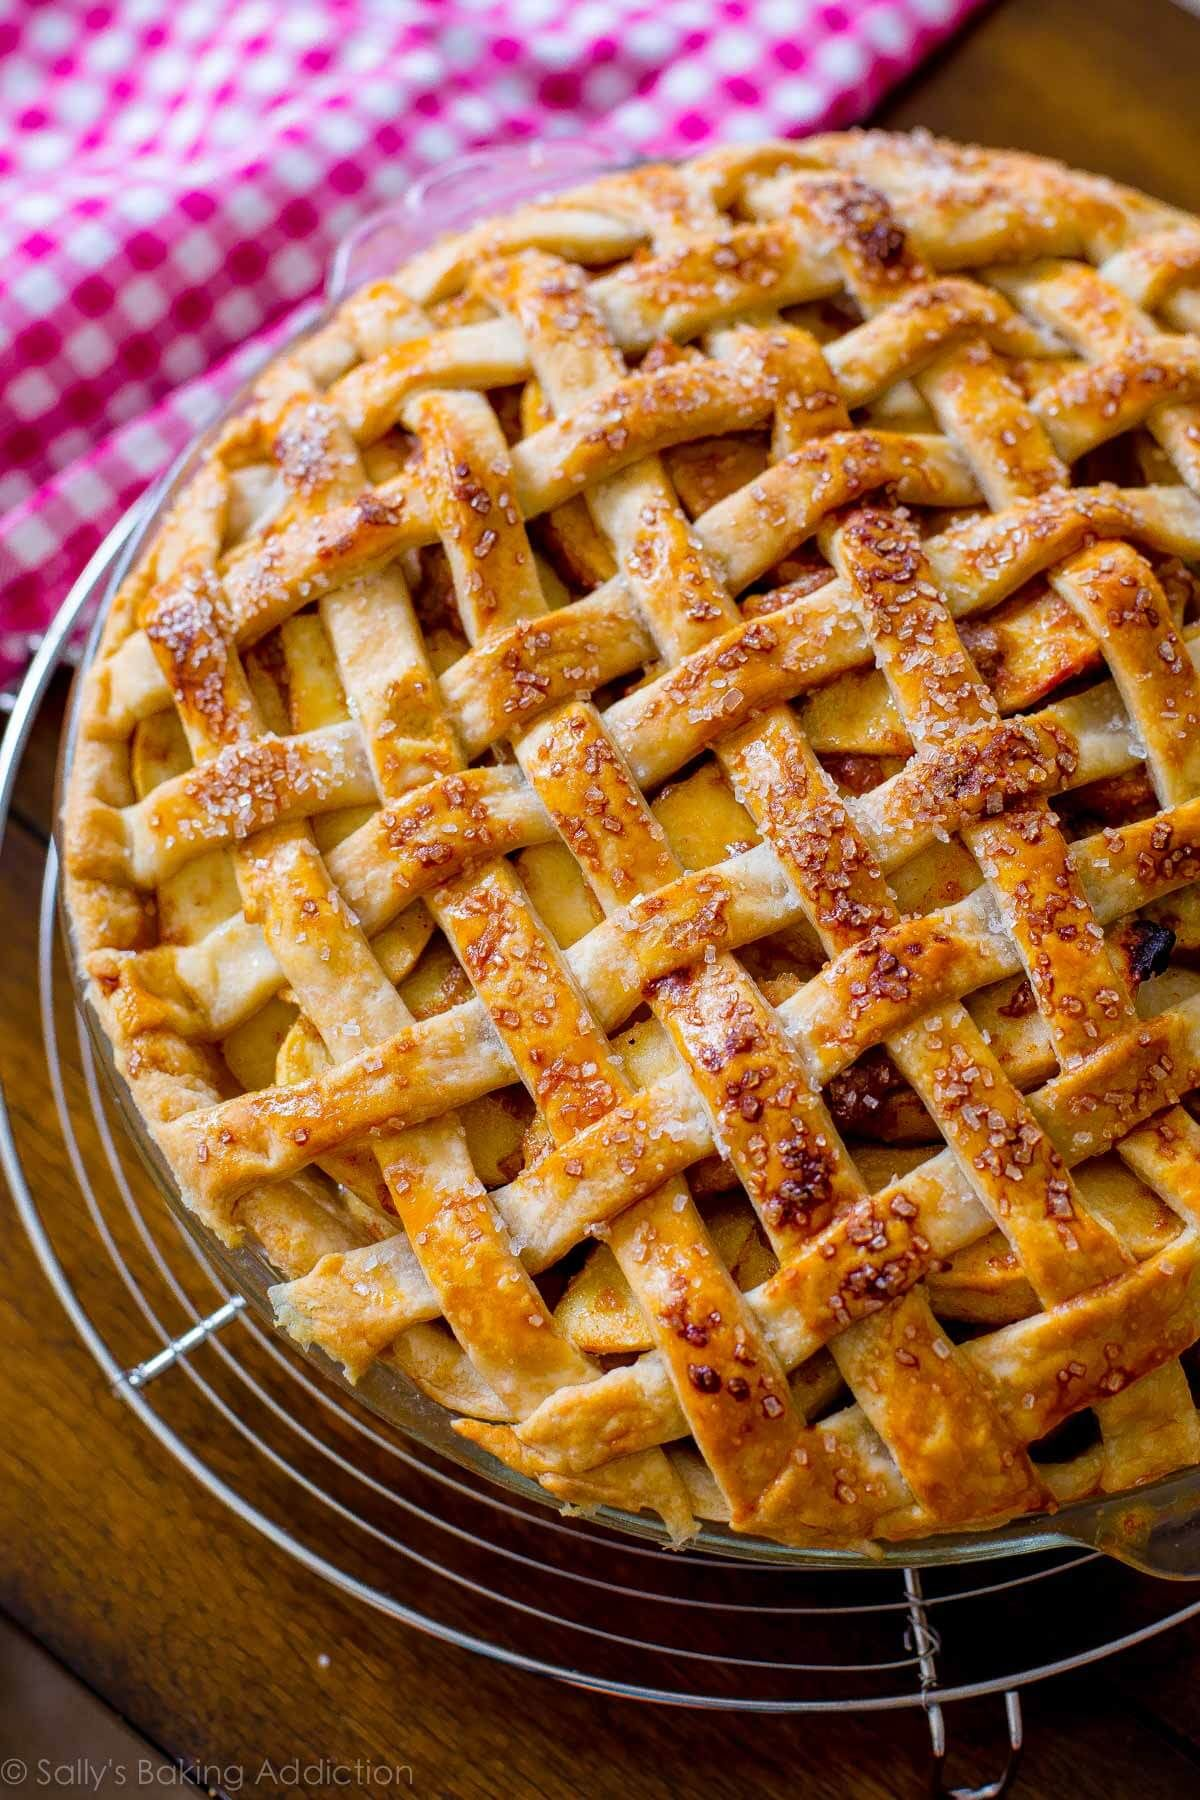 Sally's Baking Addiction Here is a classic lattice